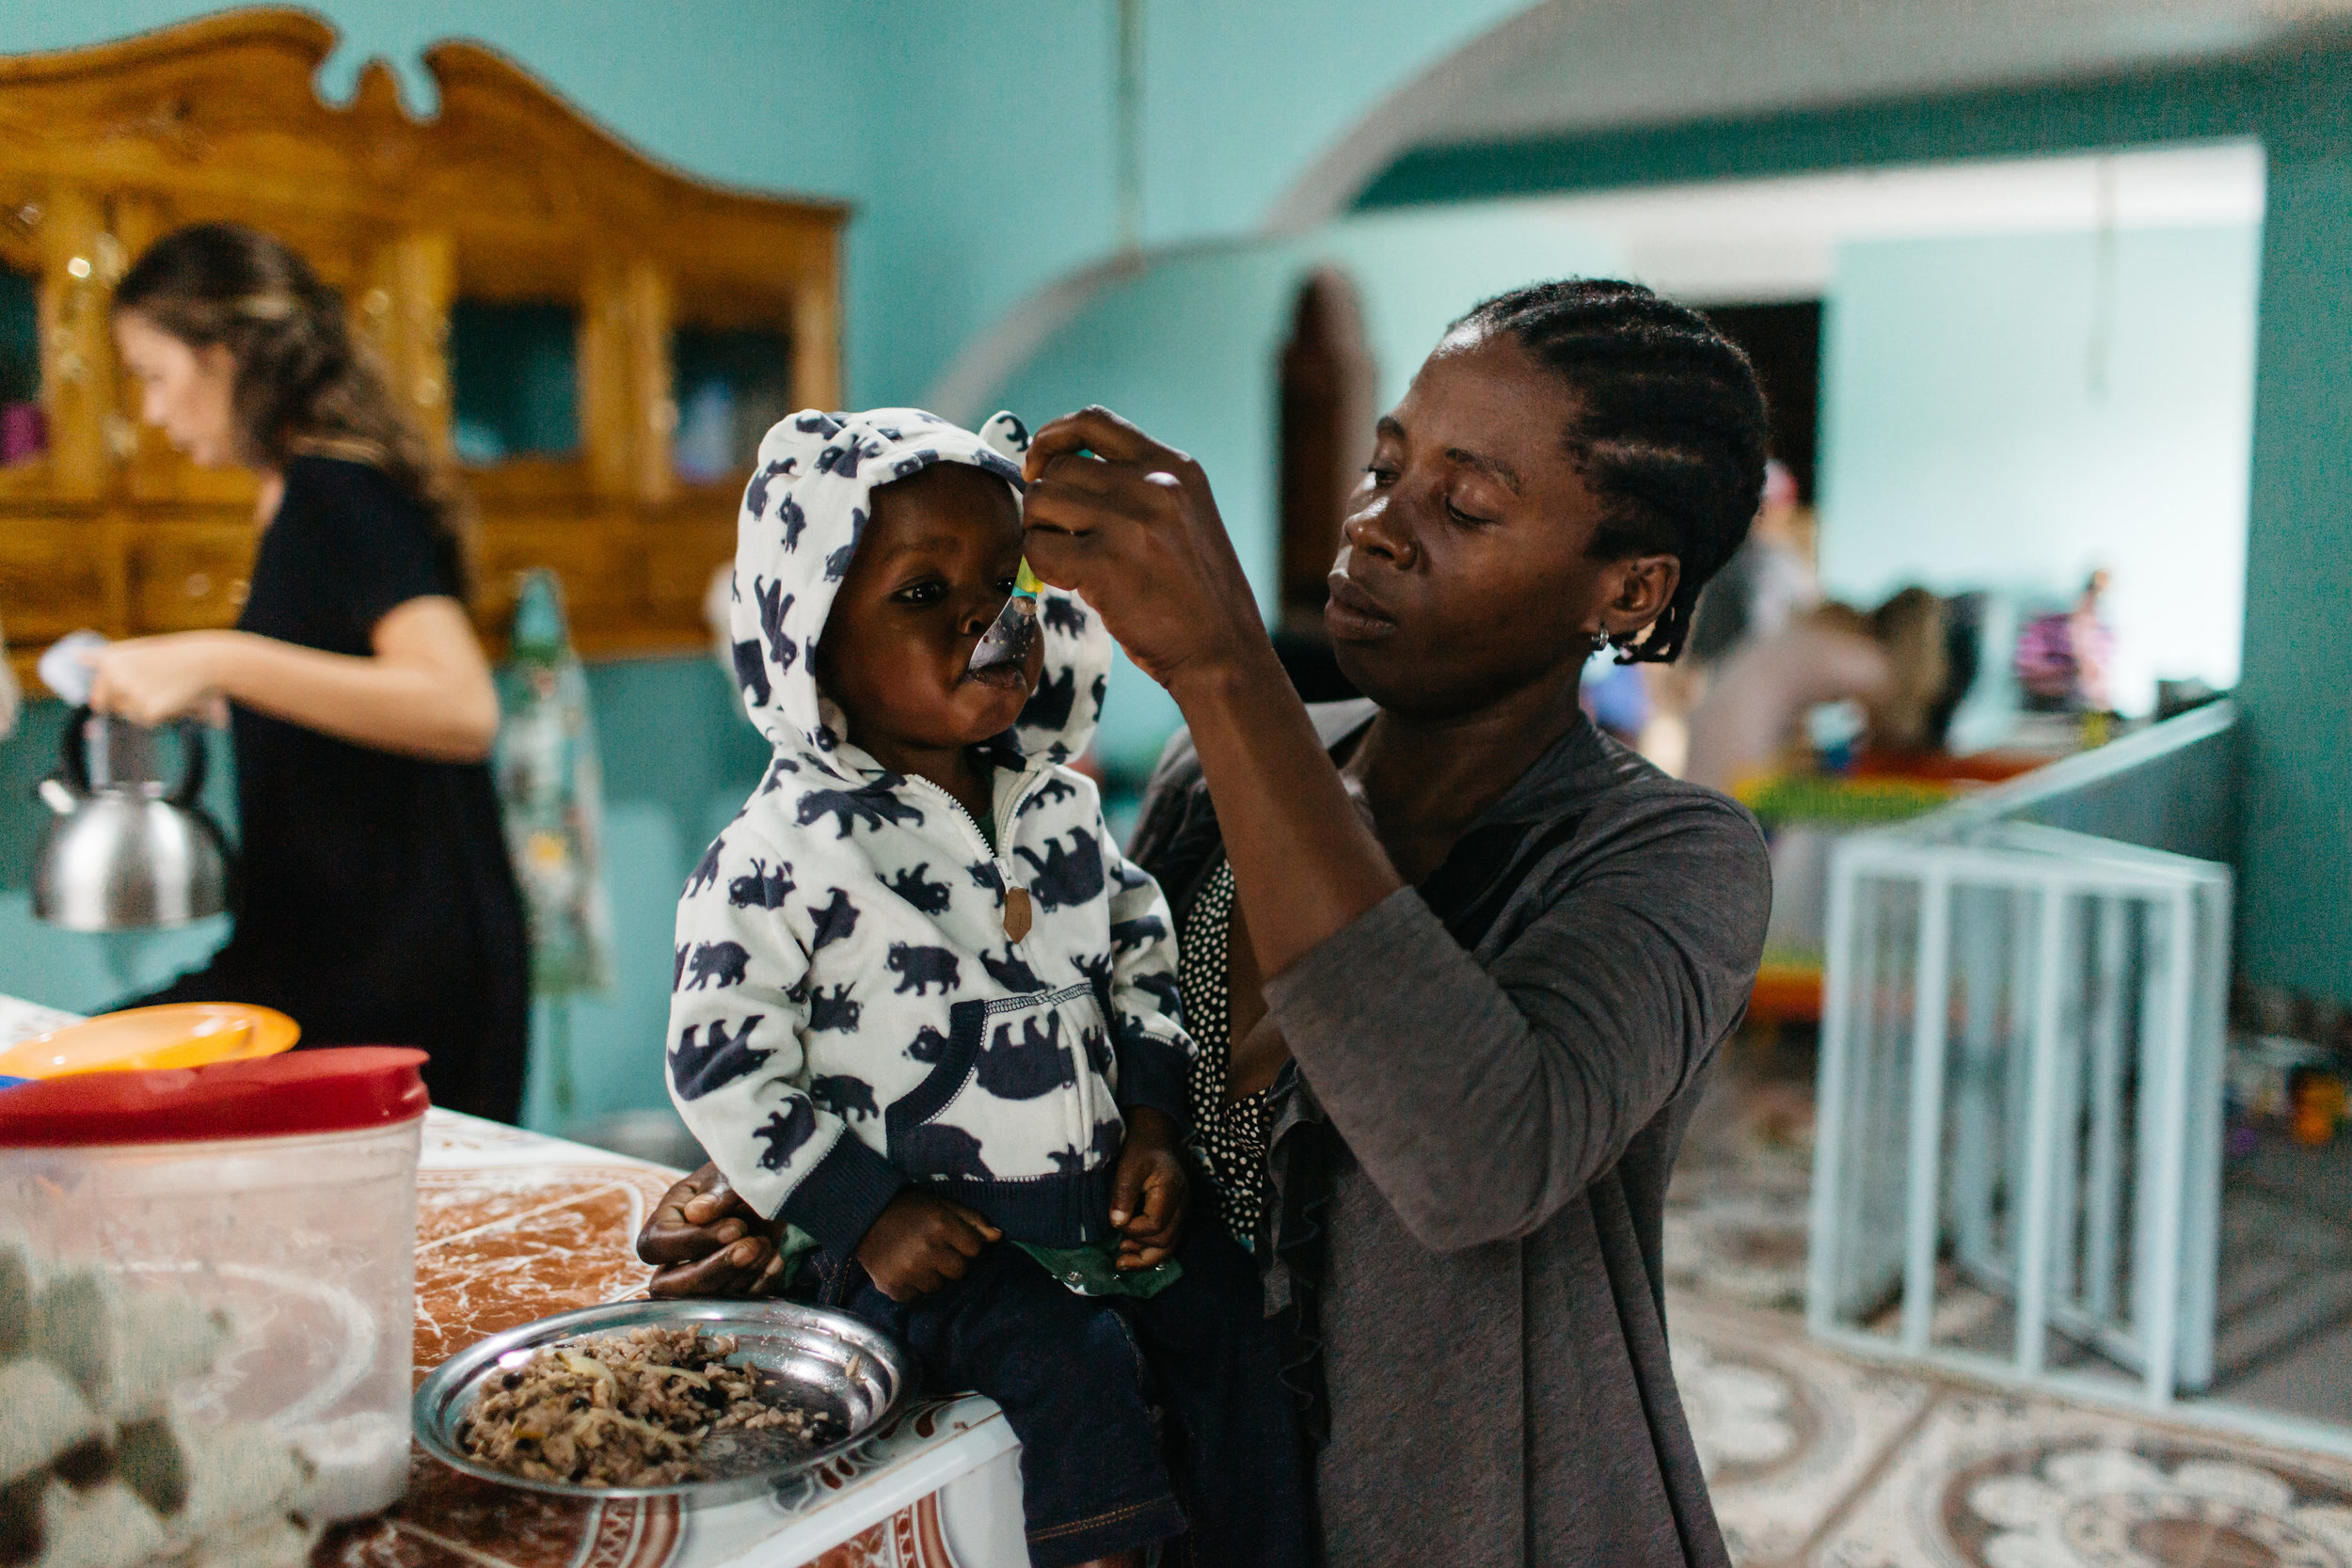 Inpatient Care - We treat severe acute malnutrition in children, using a special ready-to-use therapeutic food called Medika Mamba. Patients and their caregivers come from all over Northwest Haiti to receive treatment and education.